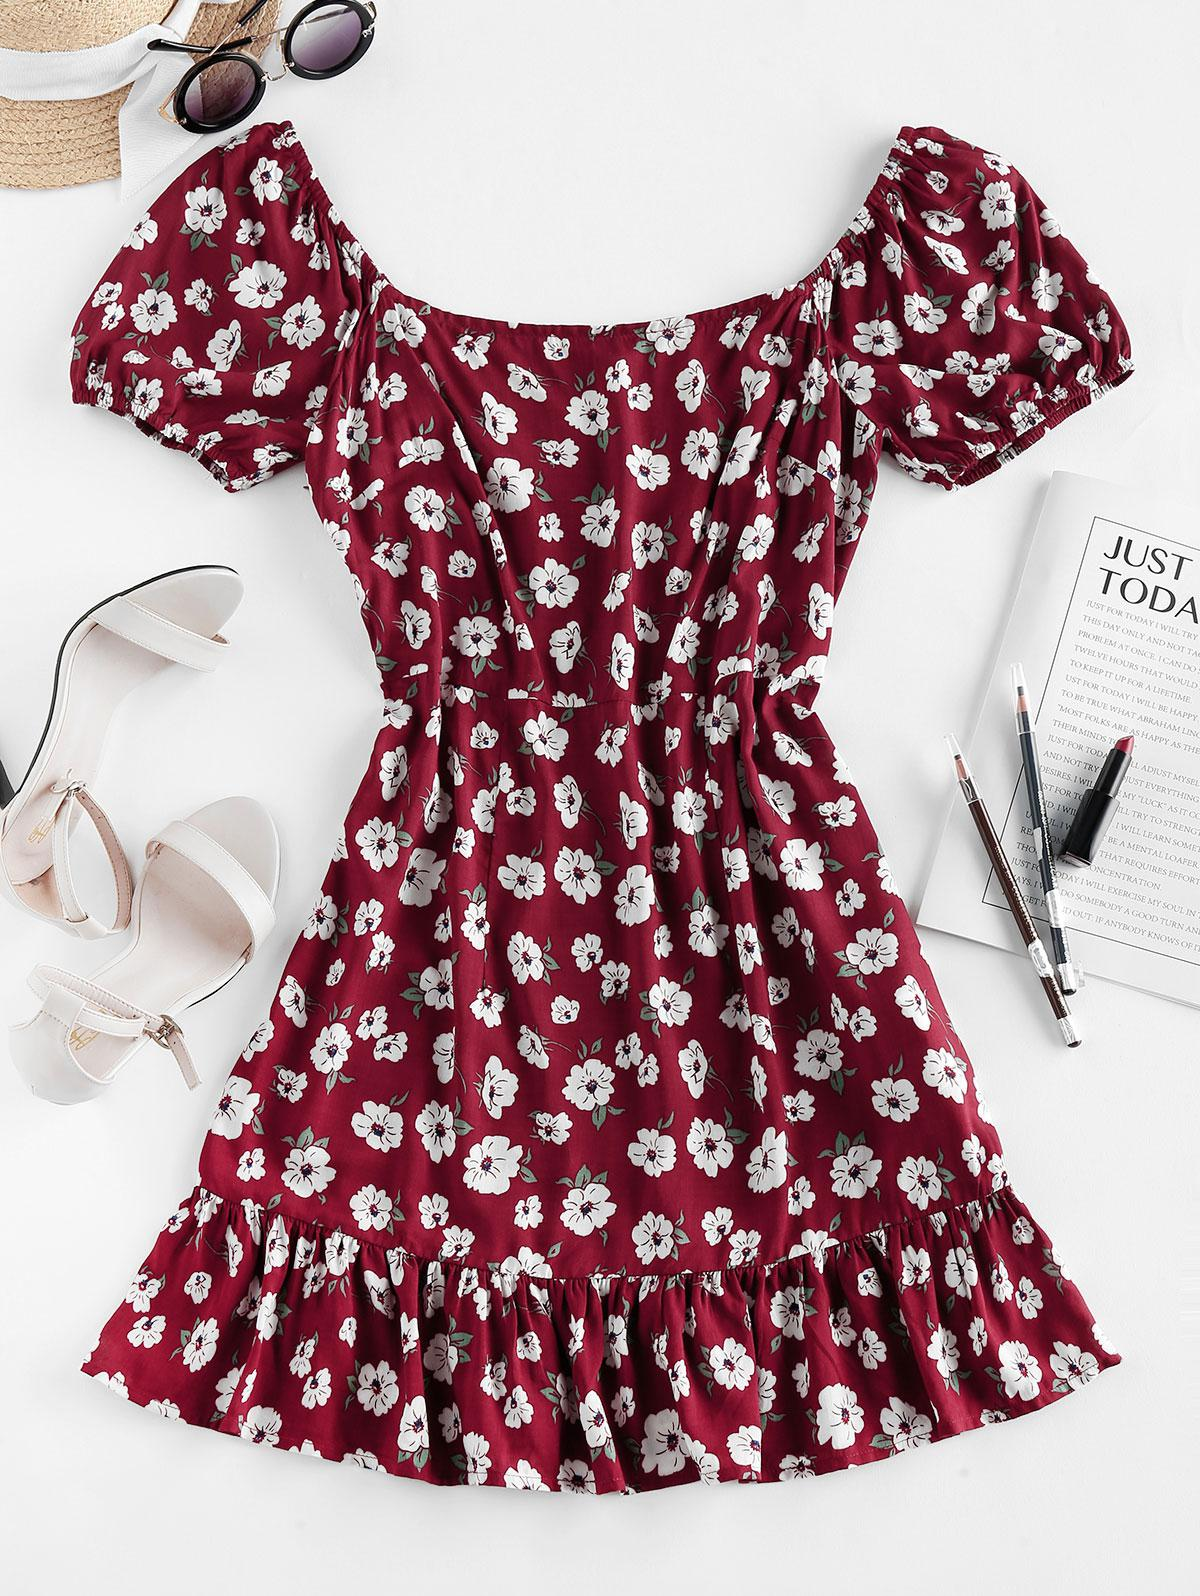 ZAFUL Floral Print Flounce Mini Dress